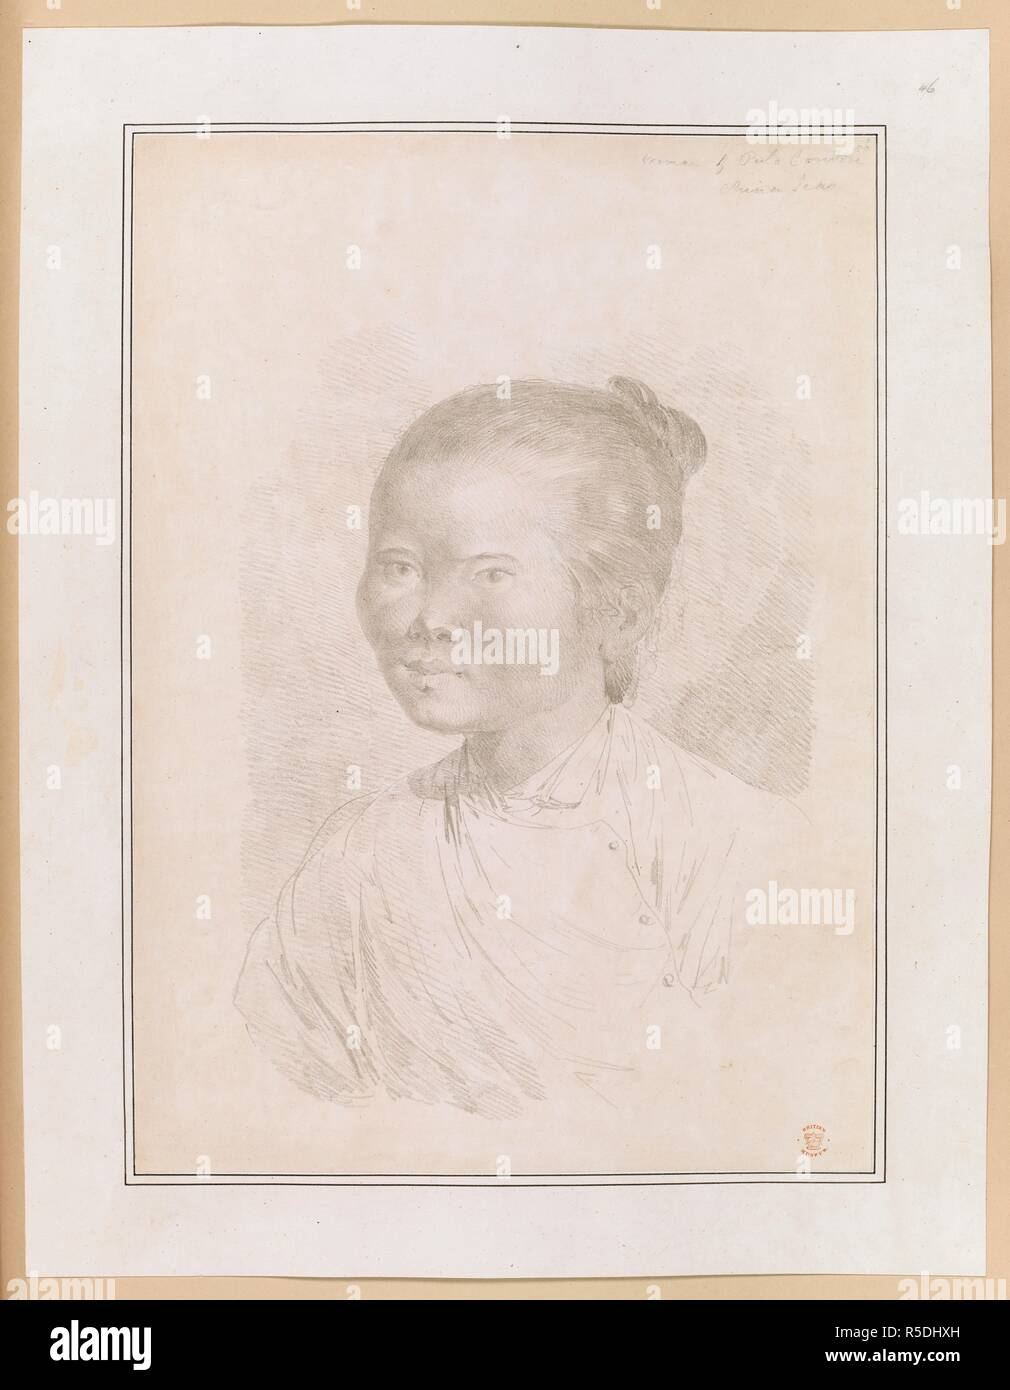 Woman of Pulo Condore.; pencil drawing. Sketches and coloured drawings made by J. Webber, during Captain Cook's third voyage, in 1776-1780 ... 1776-1780. Source: Add. 17277, no.46. - Stock Image